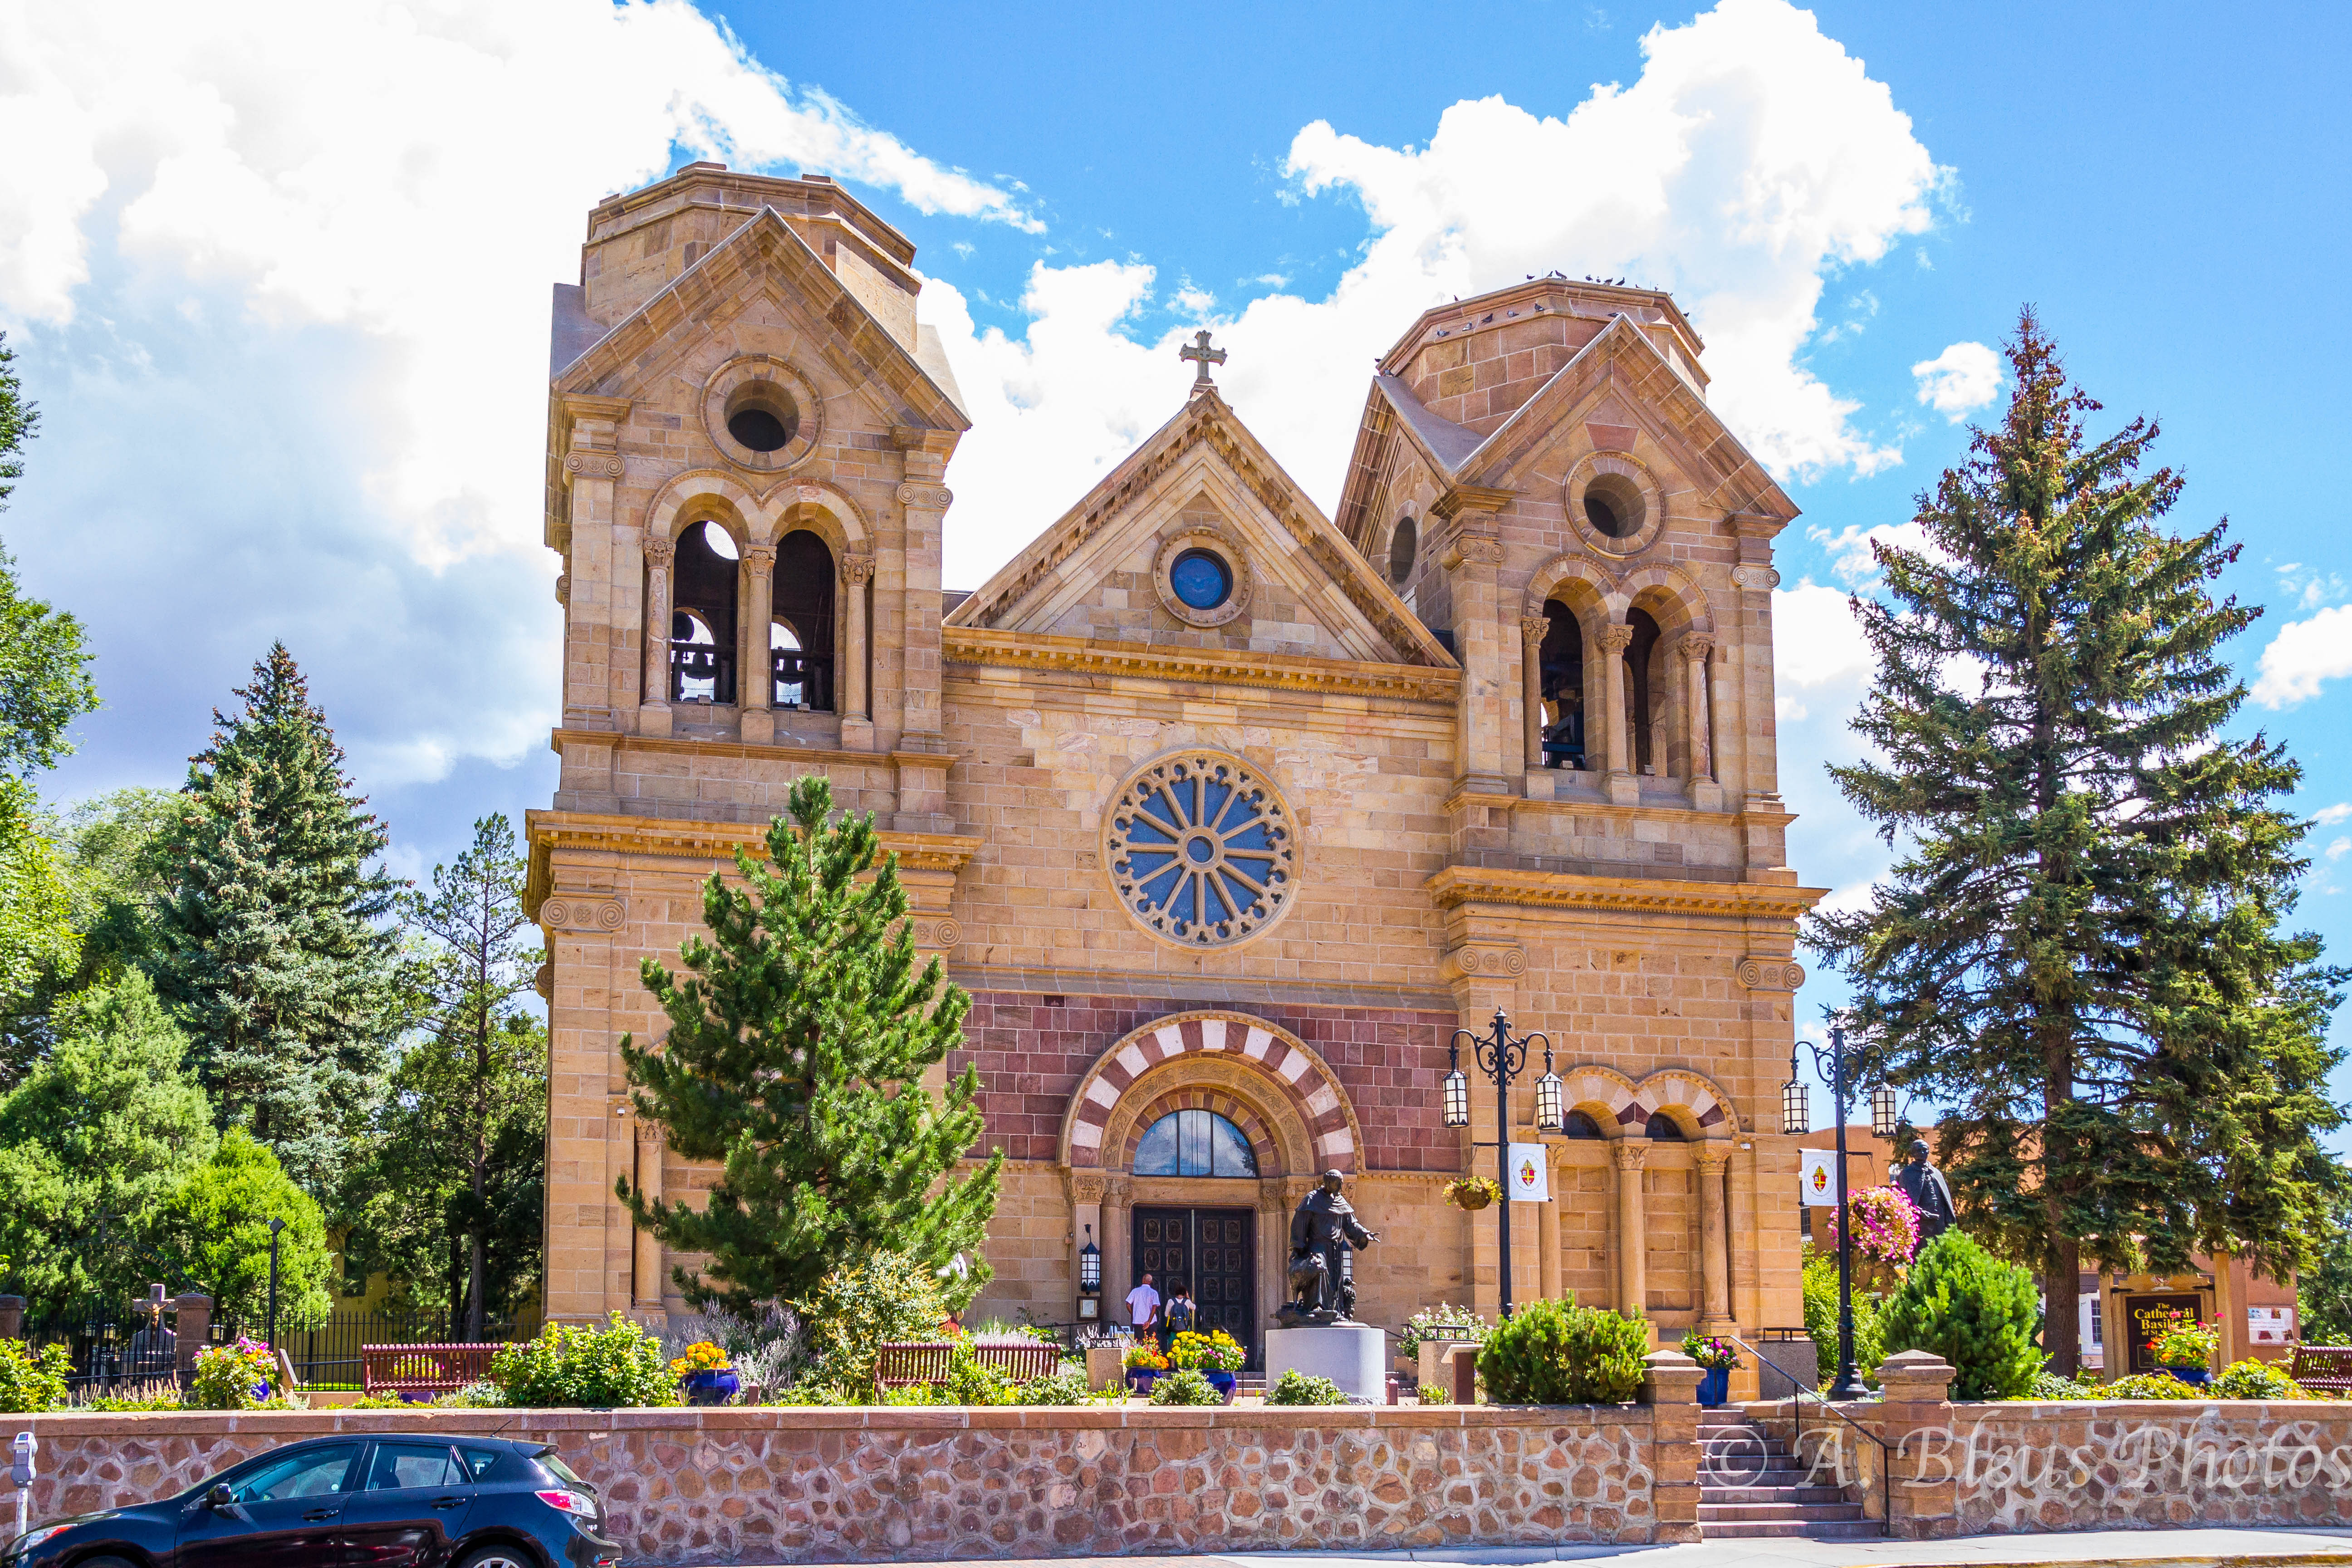 dating sites santa fe nm Venues rated as one of the and home in the heart of historic santa fe, new mexico dating back to the 1830s, we have twelve foot tall, beamed ceilings, wood.